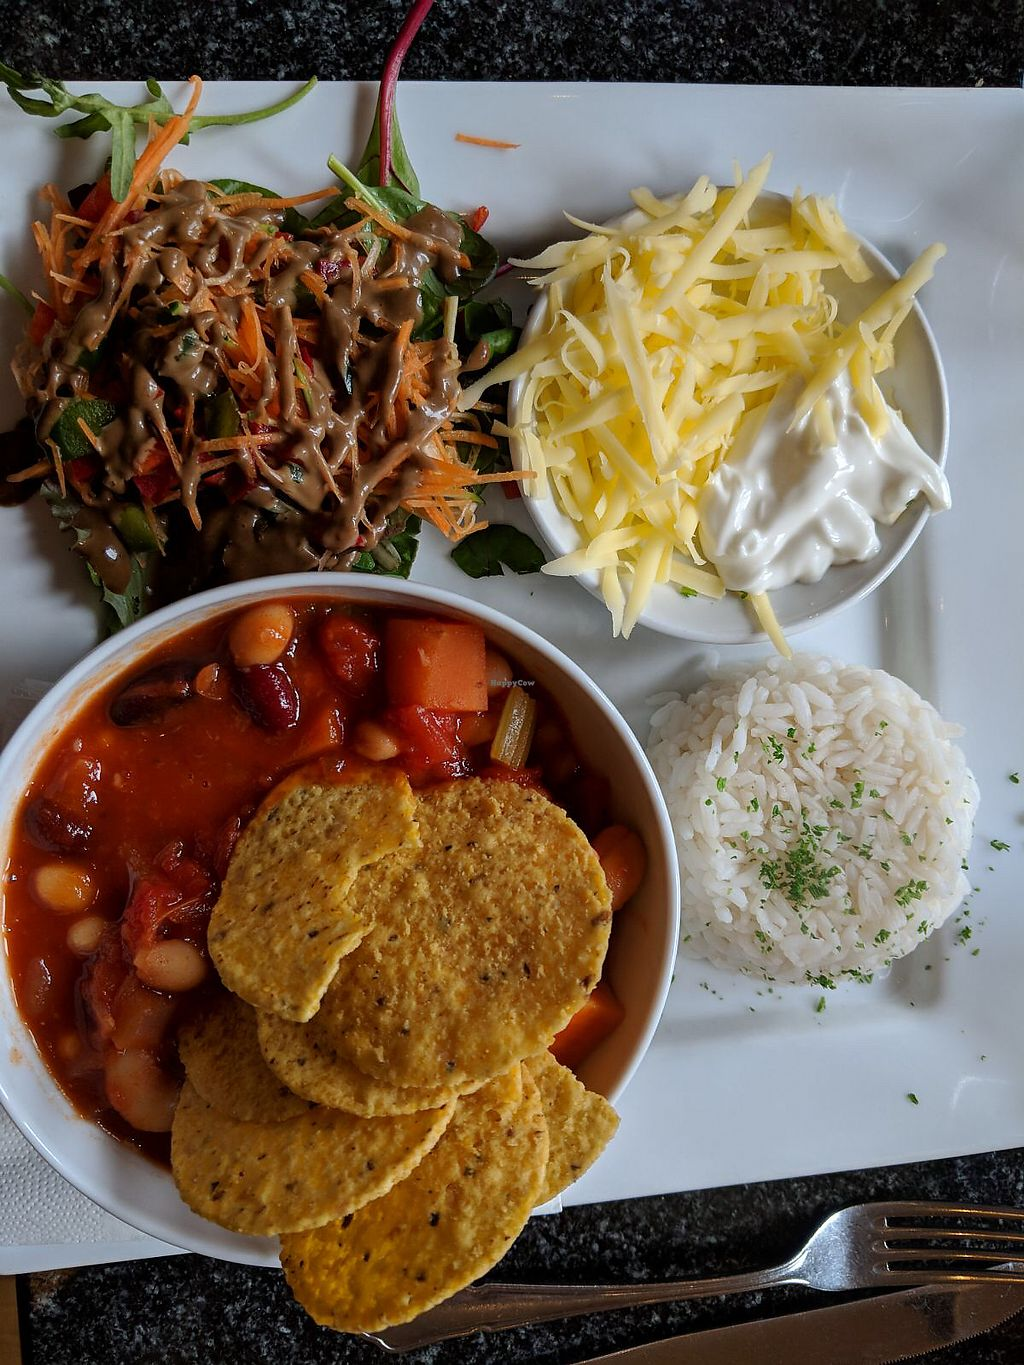 """Photo of Greens Cafe  by <a href=""""/members/profile/Geri%E2%80%99sBeanThere"""">Geri'sBeanThere</a> <br/>Vegan Chilli <br/> April 10, 2018  - <a href='/contact/abuse/image/32367/383387'>Report</a>"""